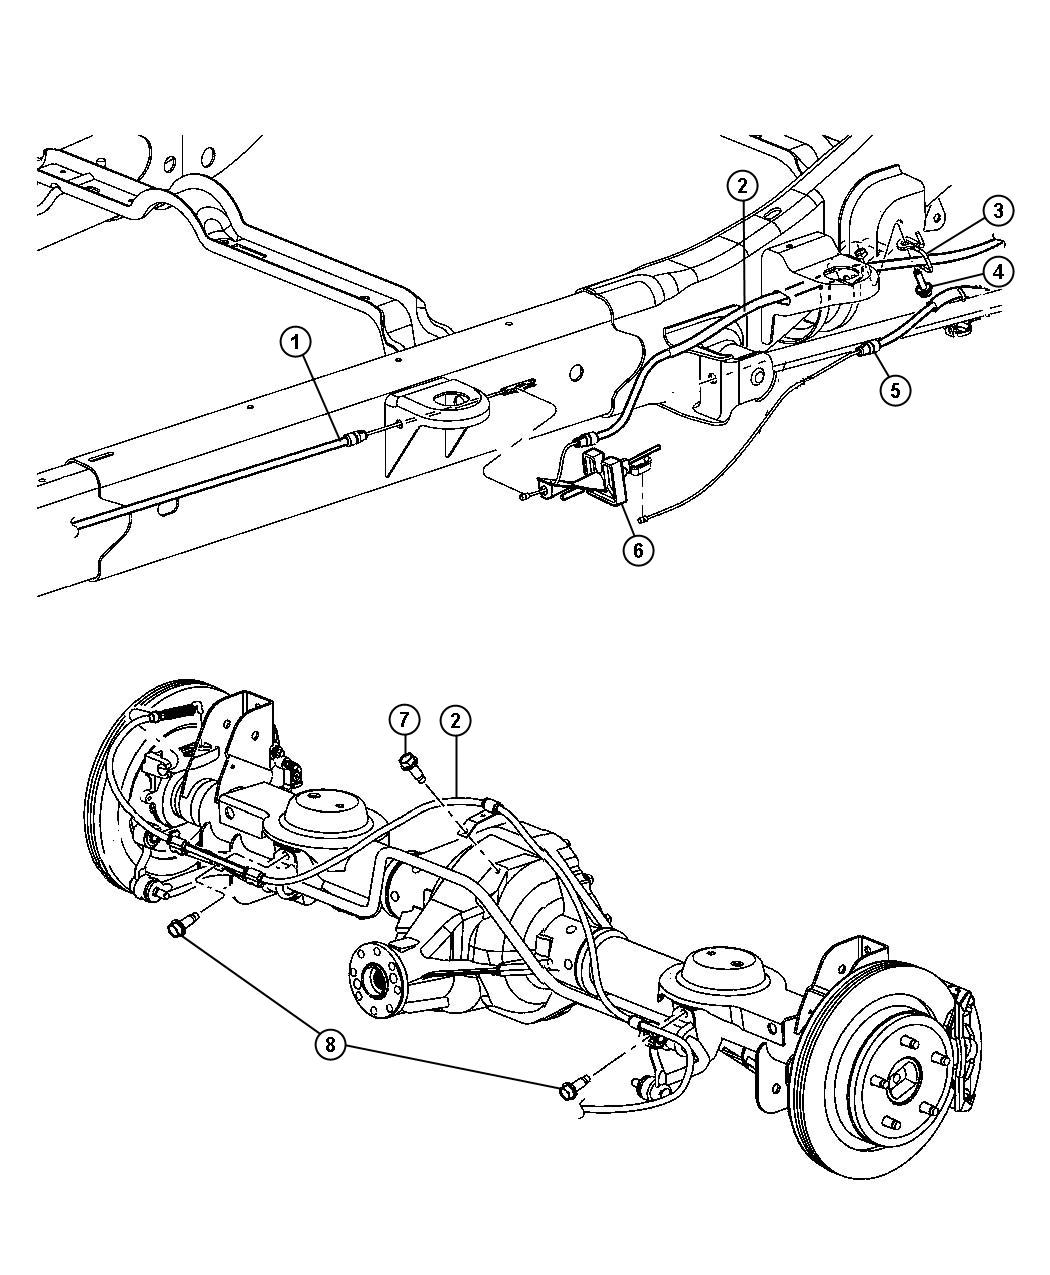 Service manual [2008 Chrysler Aspen Rear Bumper Removal